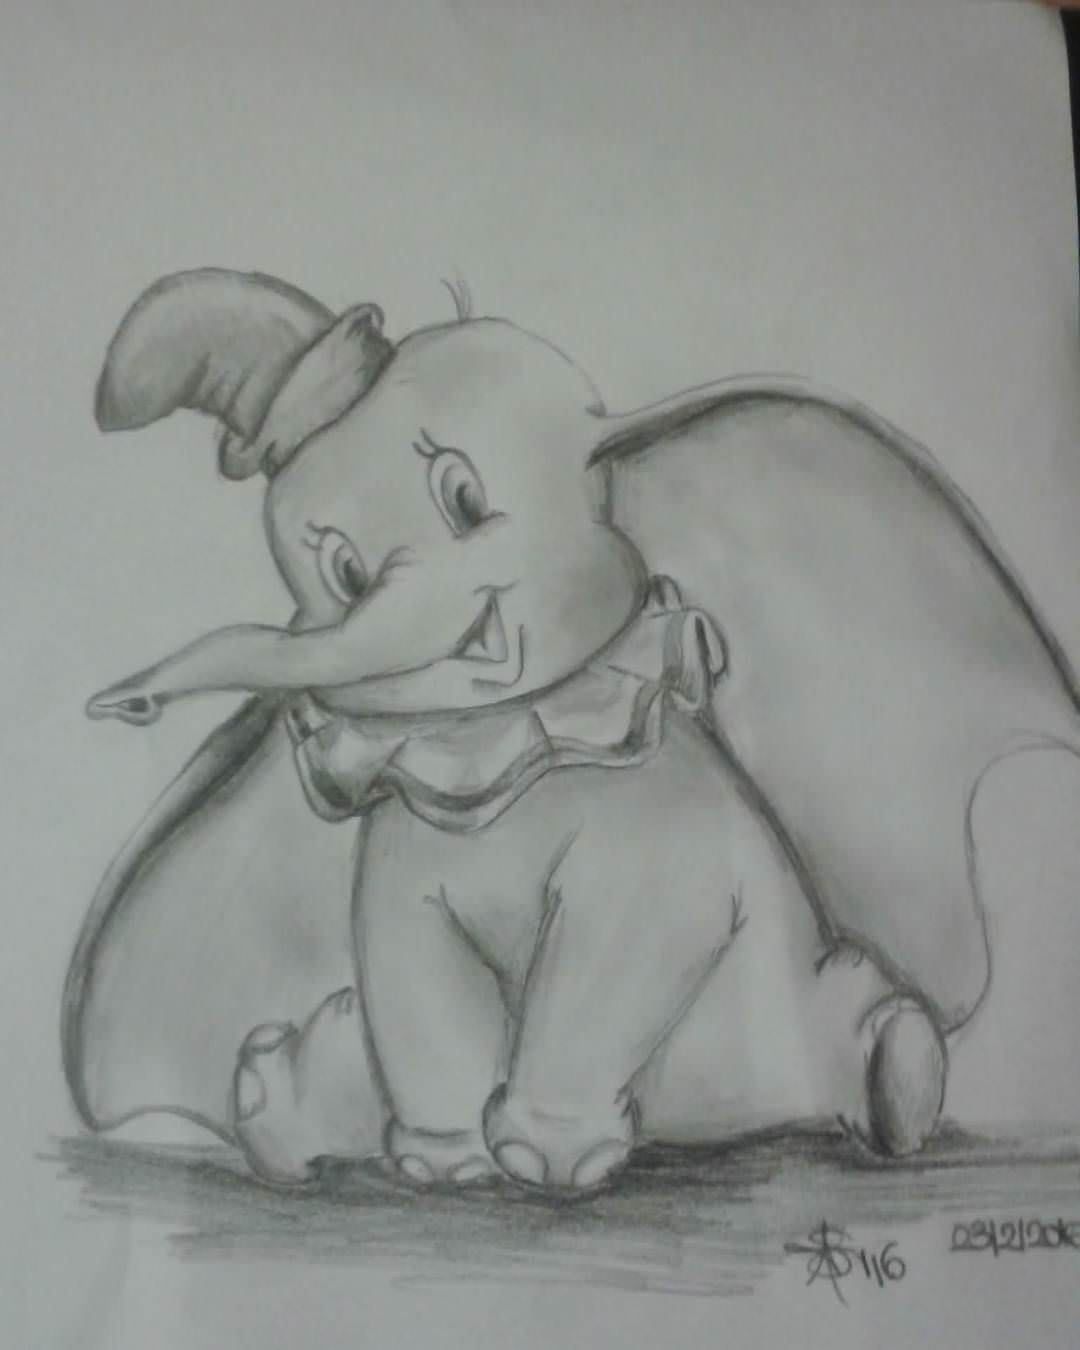 Little Dumbo from Disney